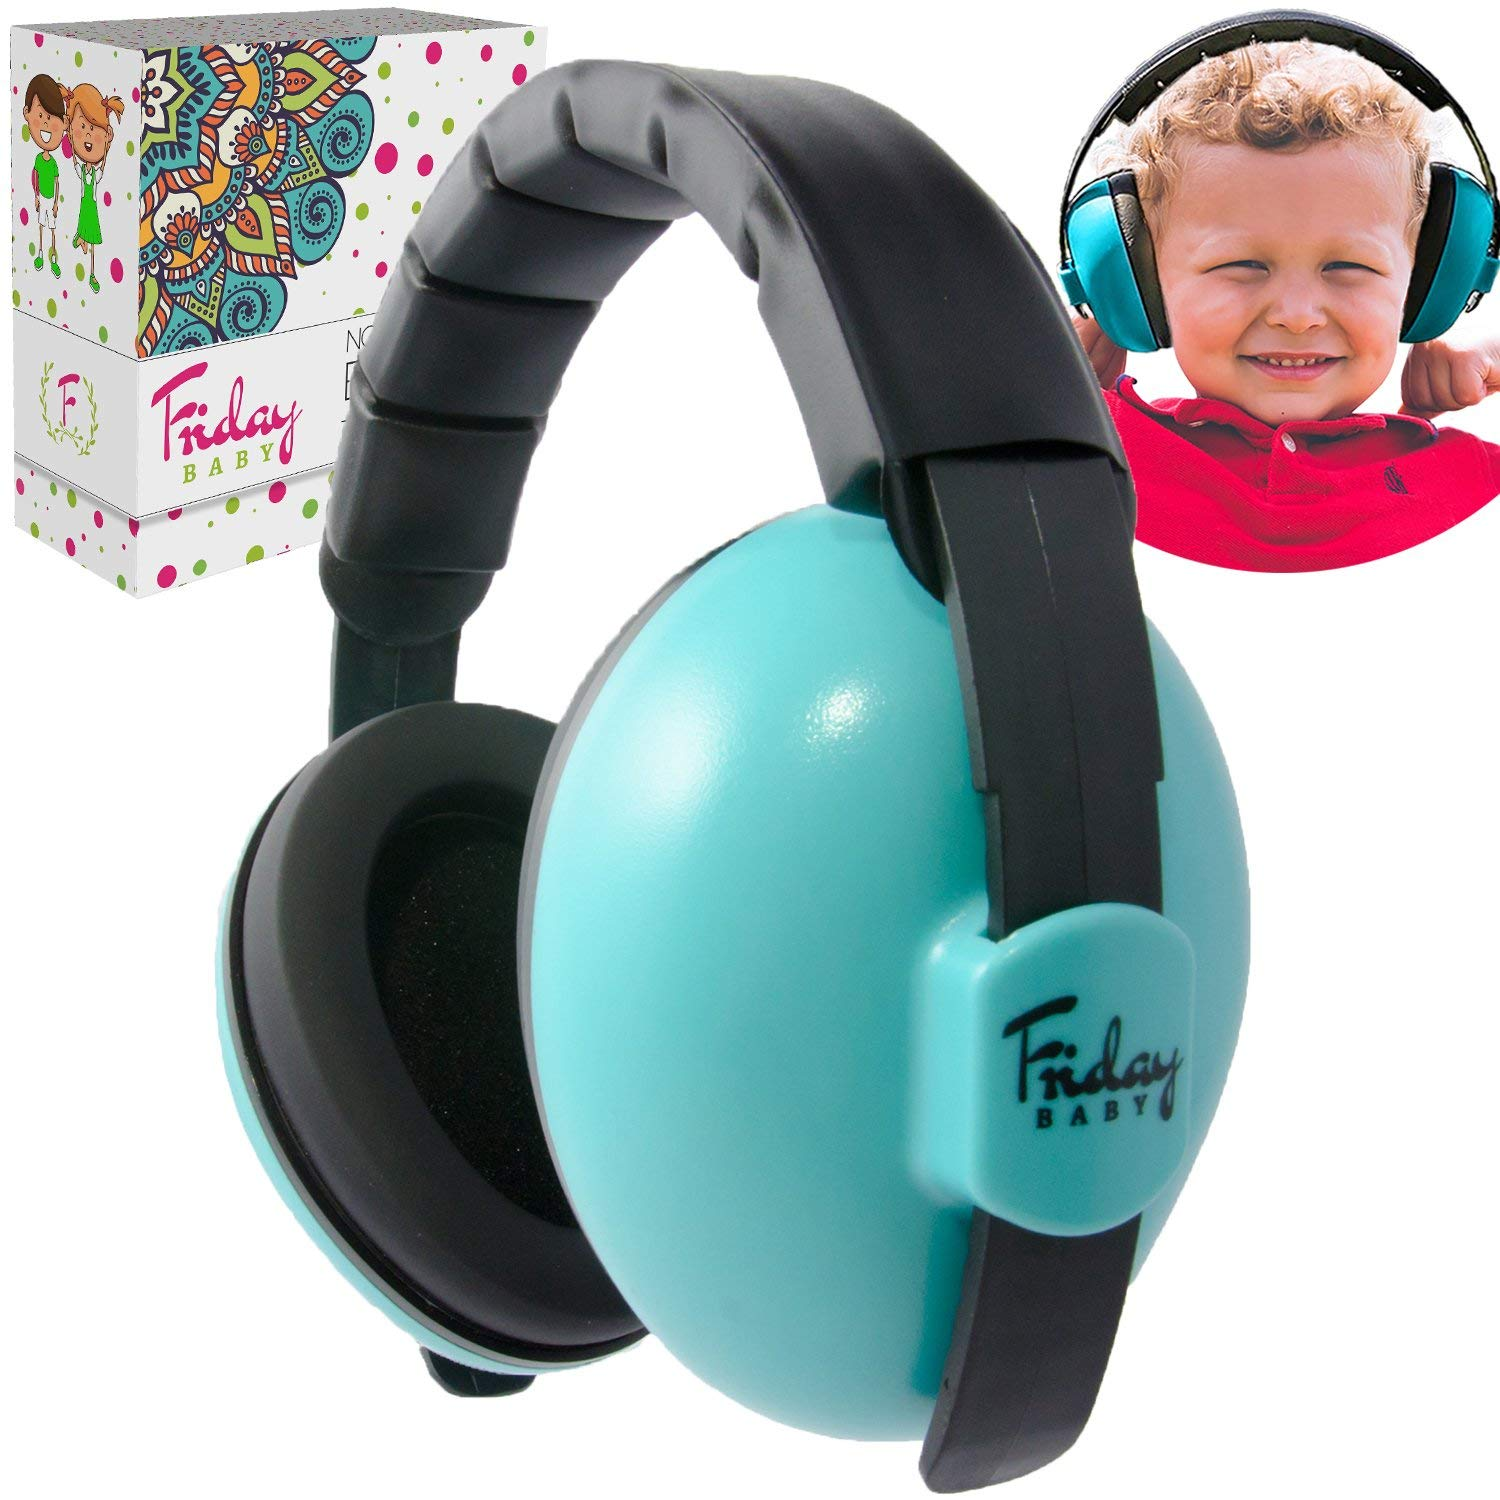 Little Baby Hearing Protective Ear Muffs Comfortable Noise Reduction Ear Buff For Protecting Your Infant Toddler Over 3 Months Back To Search Resultssecurity & Protection Workplace Safety Supplies